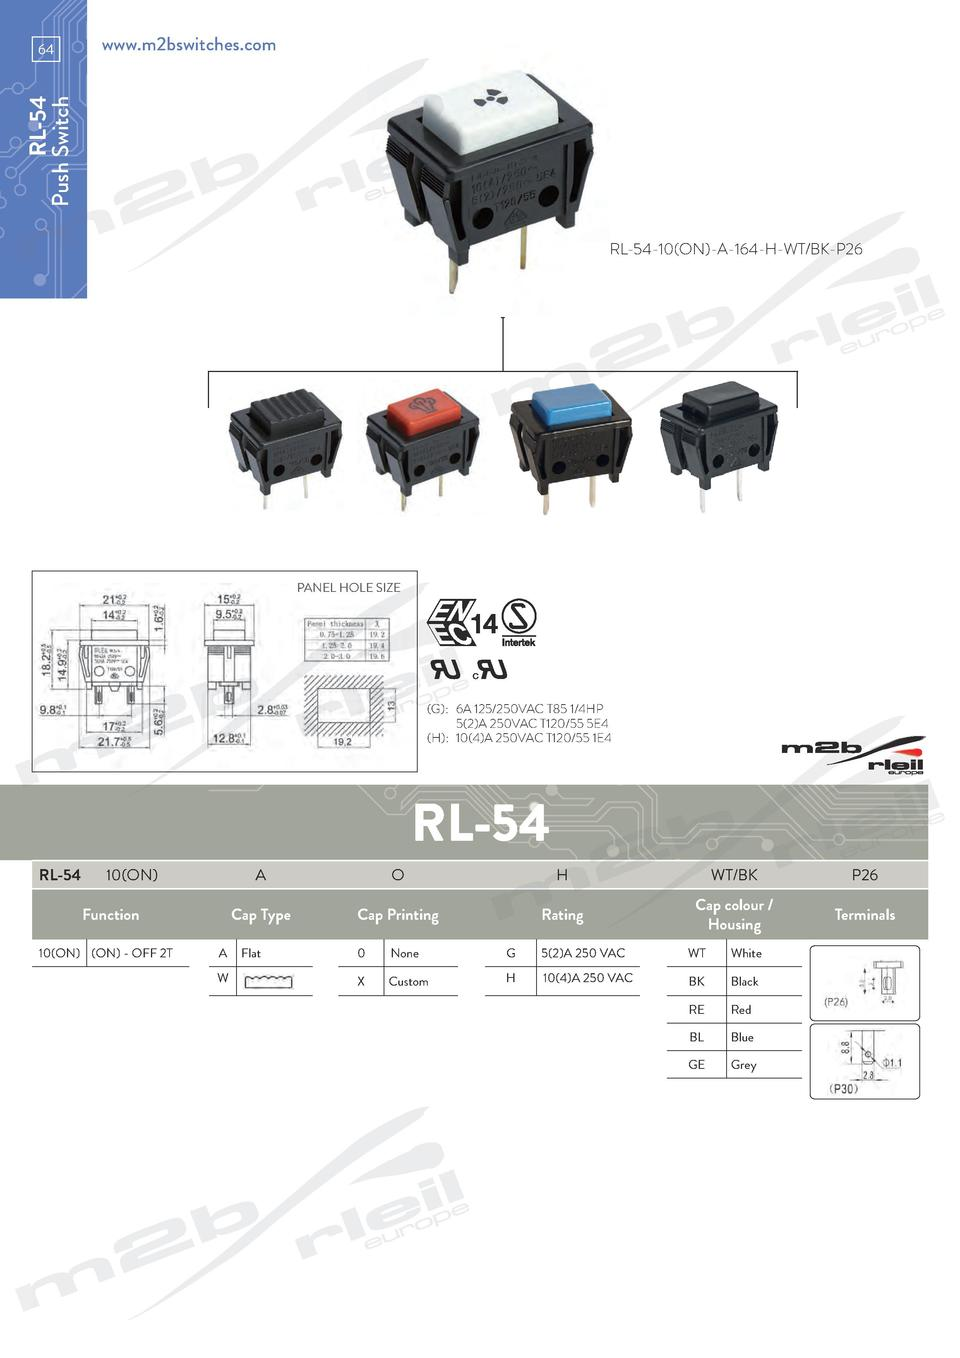 www.m2bswitches.com  RL-54 Push Switch  64  RL-54-10 ON -A-164-H-WT BK-P26  PANEL HOLE SIZE   G    6A 125 250VAC T85 1 4HP...